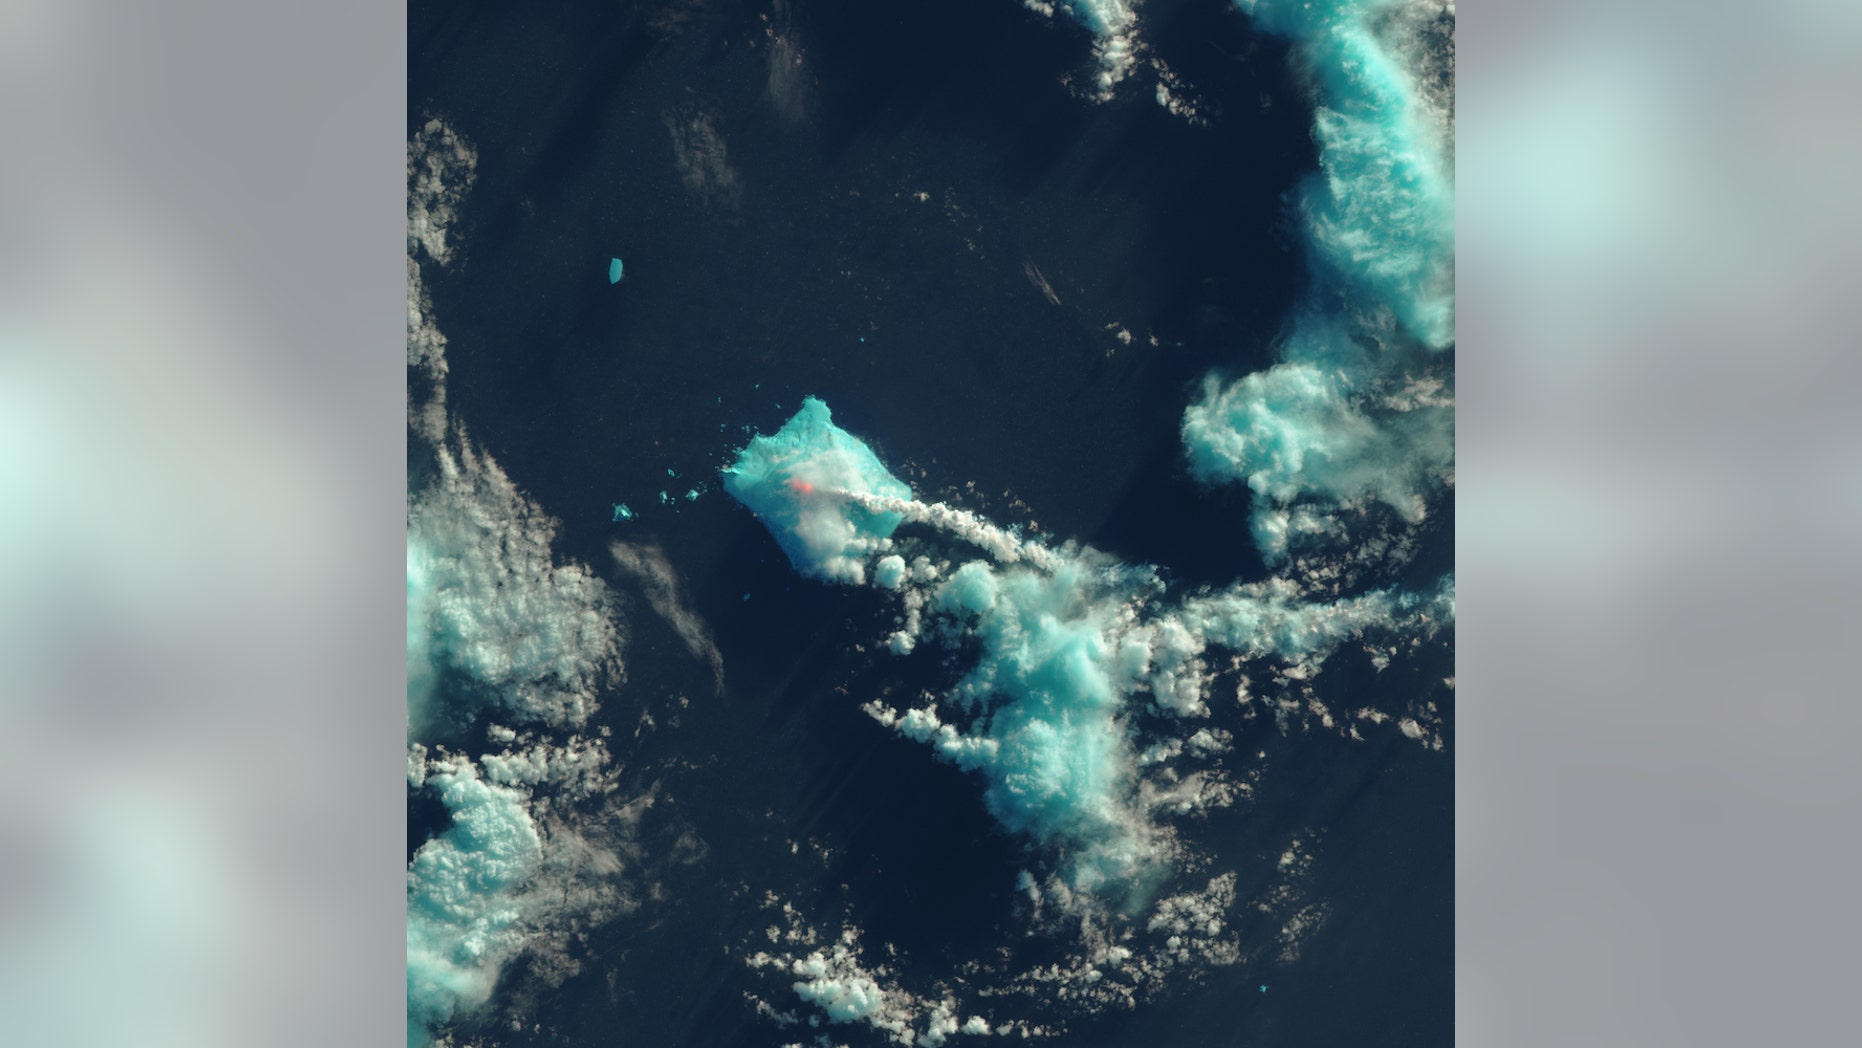 Nobody lives near Mount Sourabaya, but a NASA satellite captured its eruption in the South Atlantic in this false-color image.